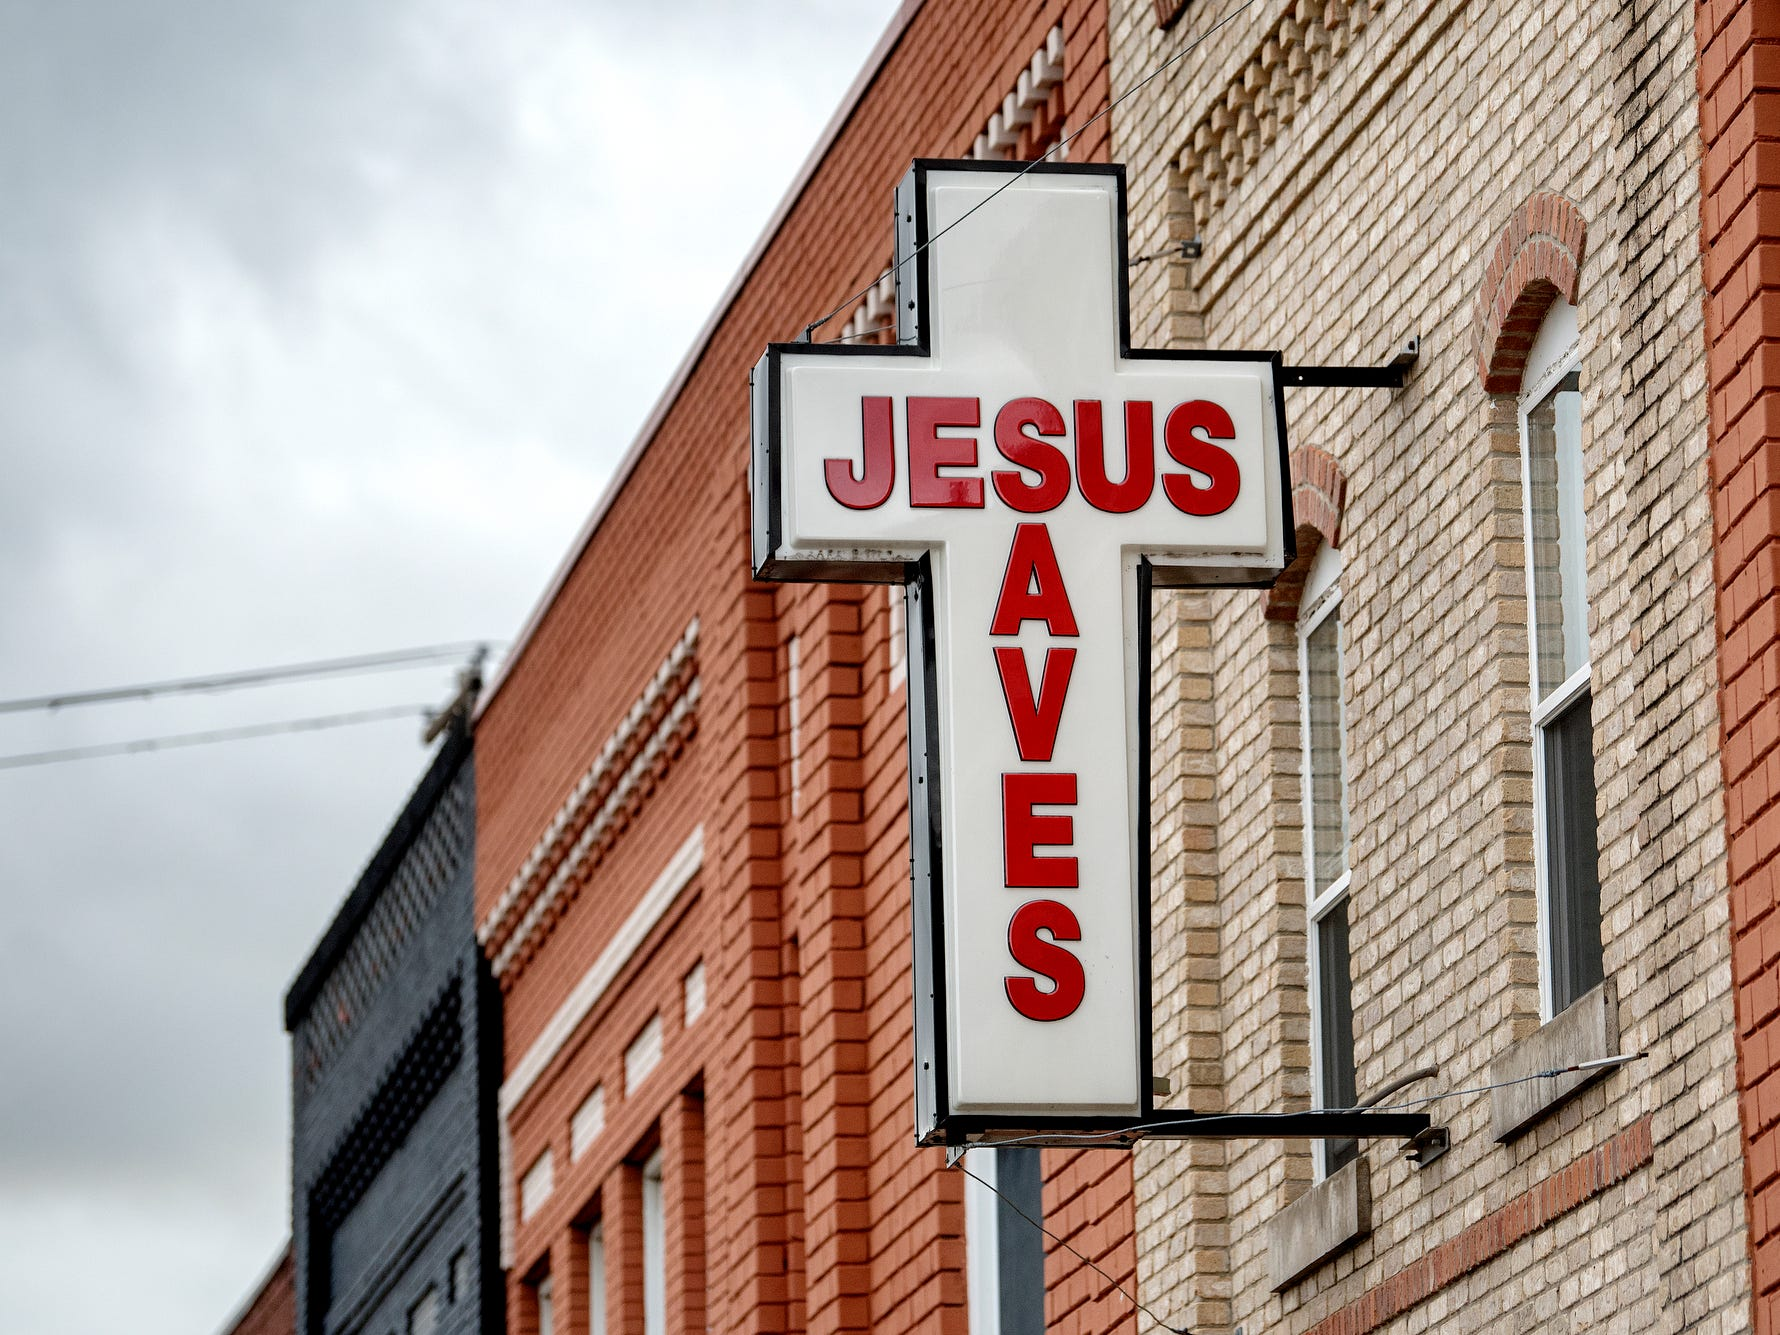 The 'Jesus Saves' sign above the City Rescue Mission photographed on Monday, Sept. 10, 2018, in downtown Lansing. The mission is located across Michigan Avenue from the site where the Gillespie Group is planning to build a grocery store and hotel.